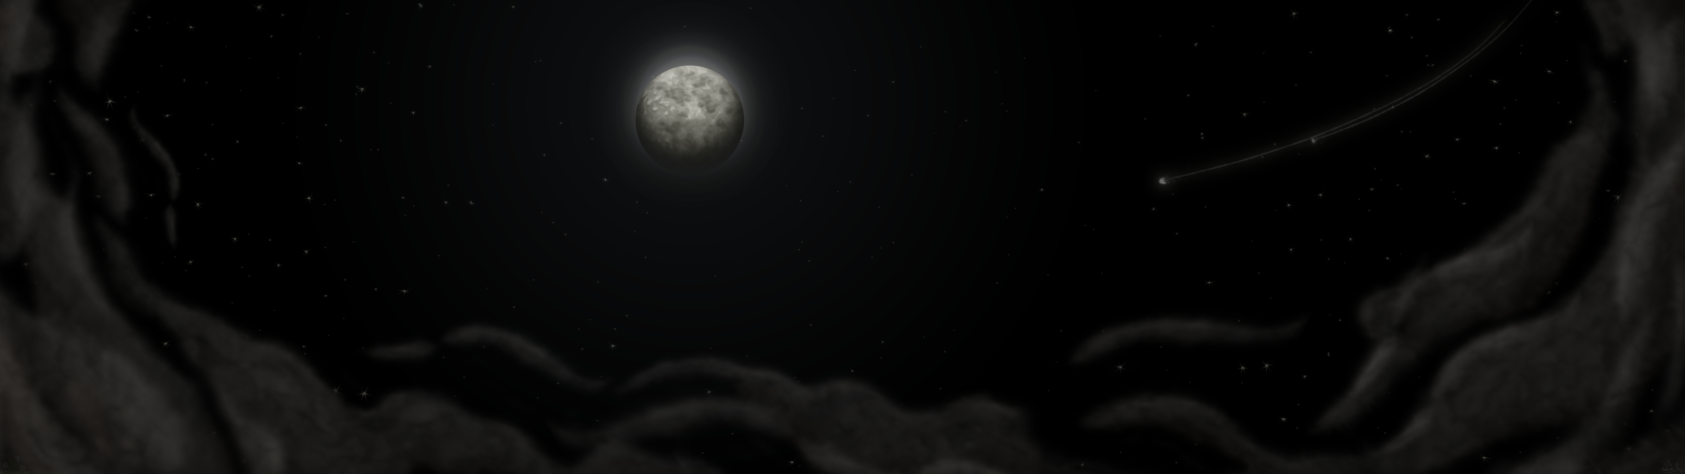 Moonlight [Dual 4K and 1080p 169 Wallpaper] by ComikzInk on 1685x474